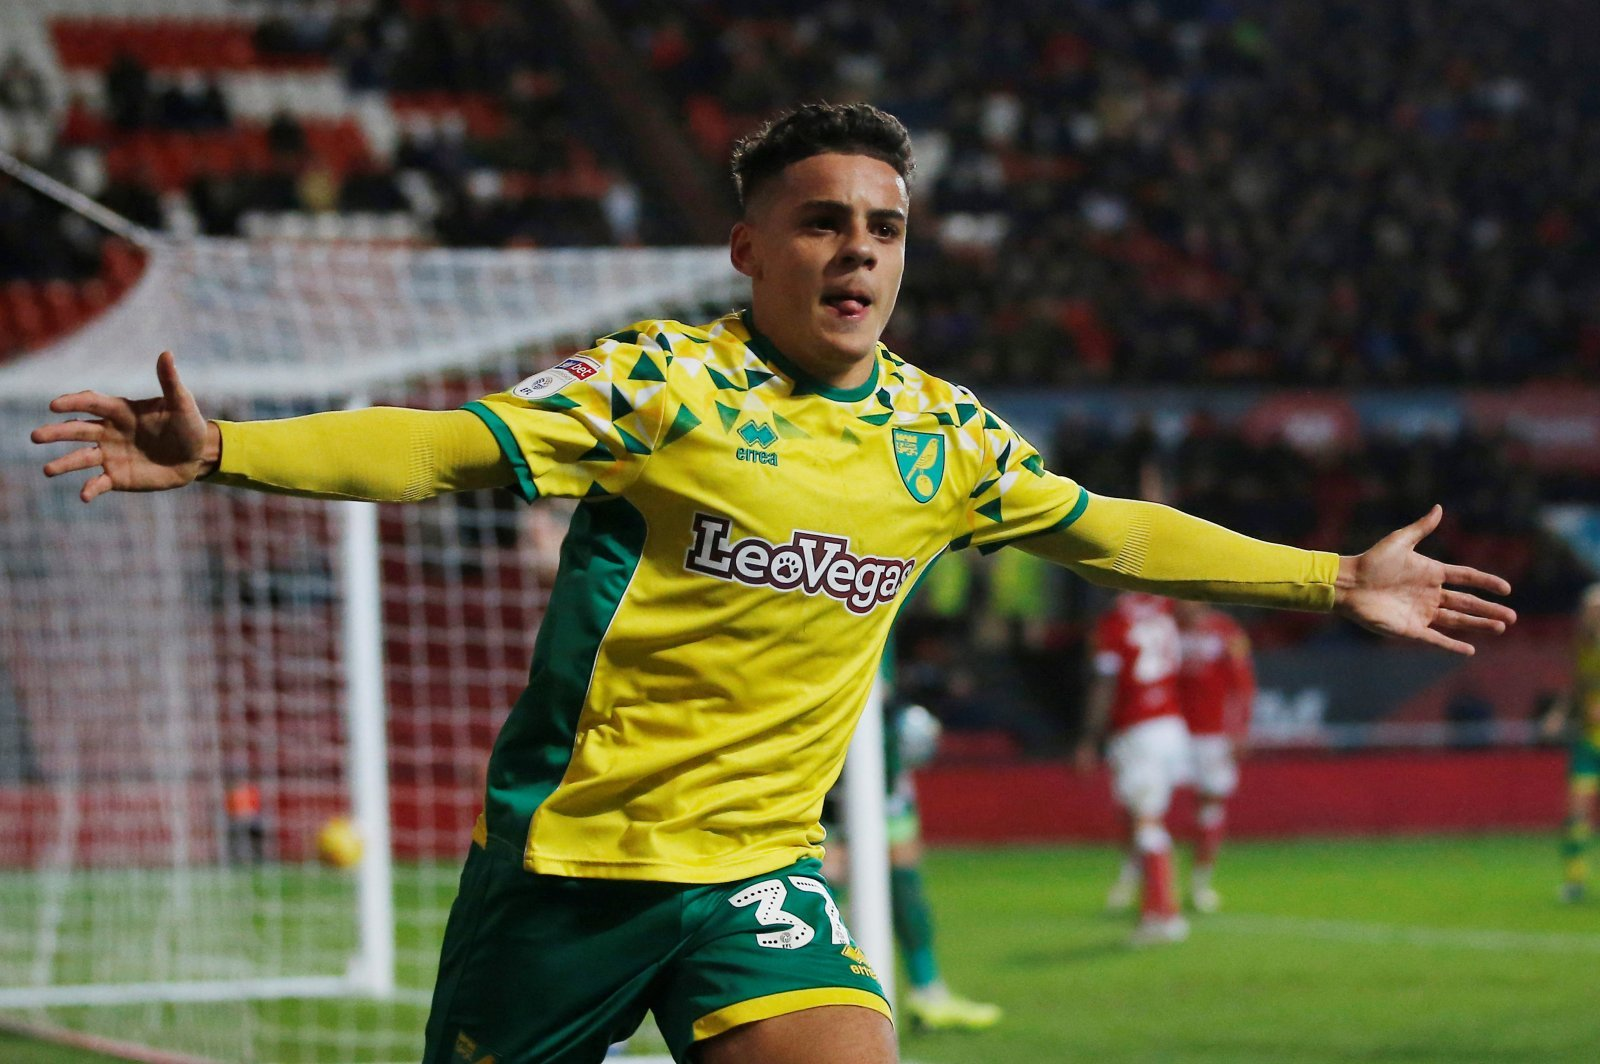 Crystal Palace: Club set to make £10m bid for Max Aarons